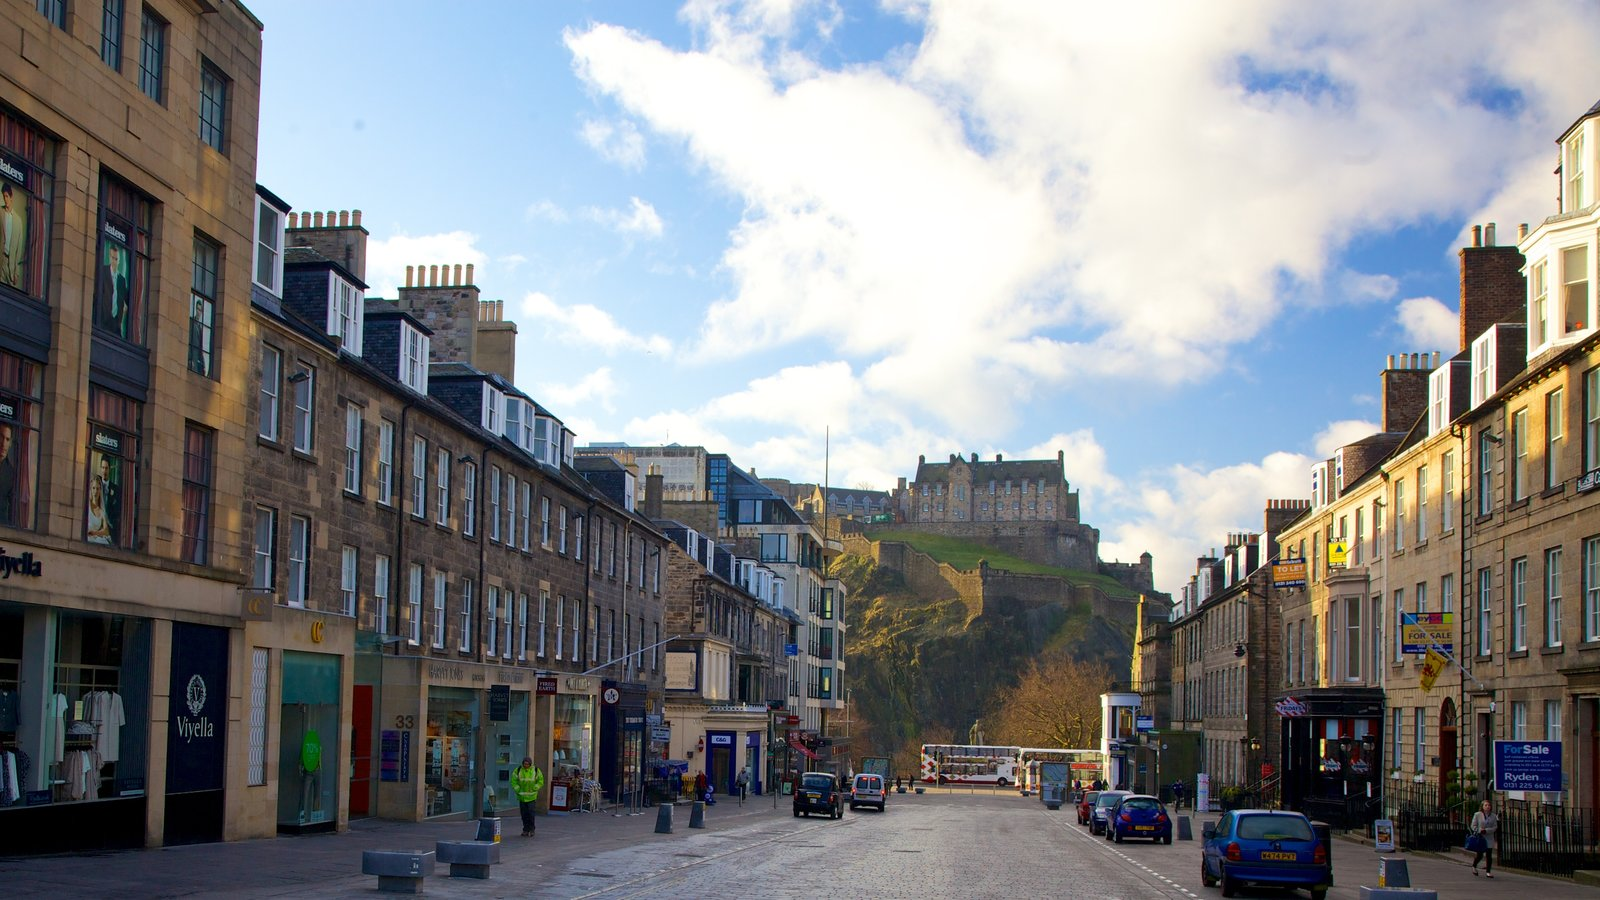 Edinburgh Castle which includes chateau or palace, a city and street scenes